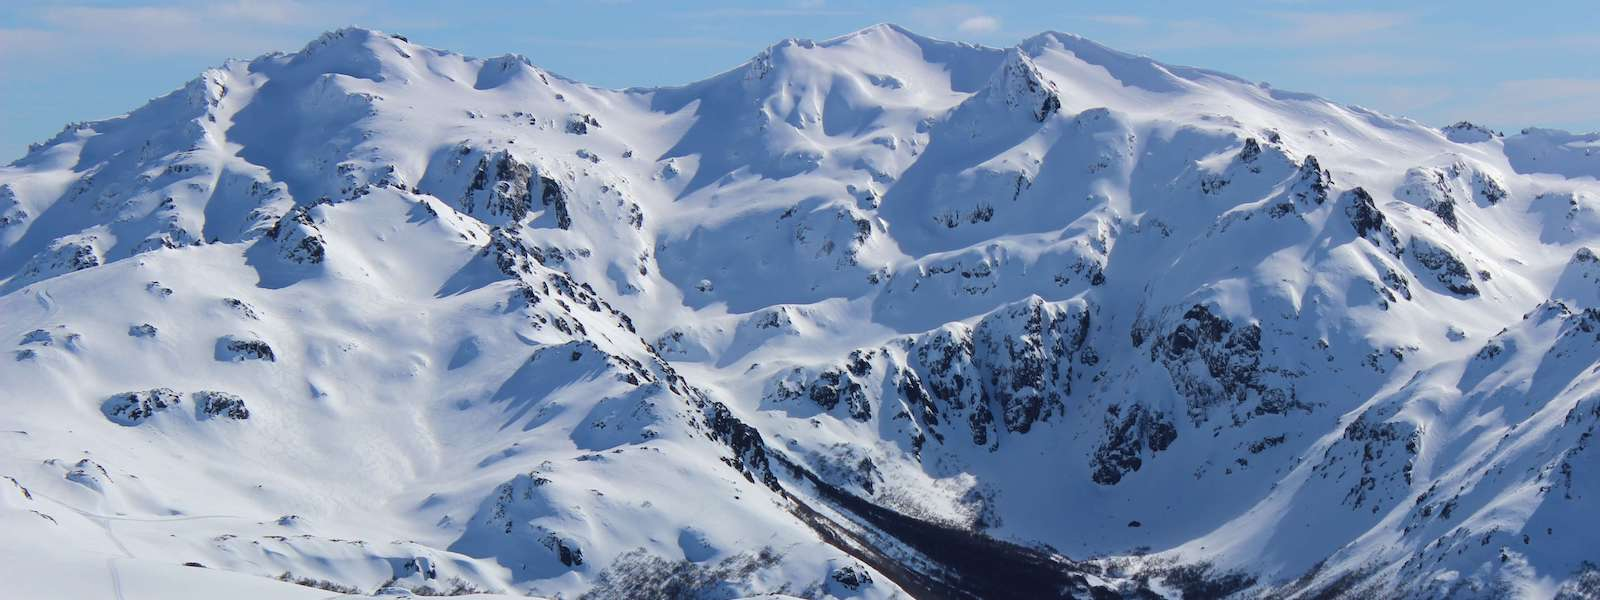 baguales mountain reserve's catskiing in patagonia